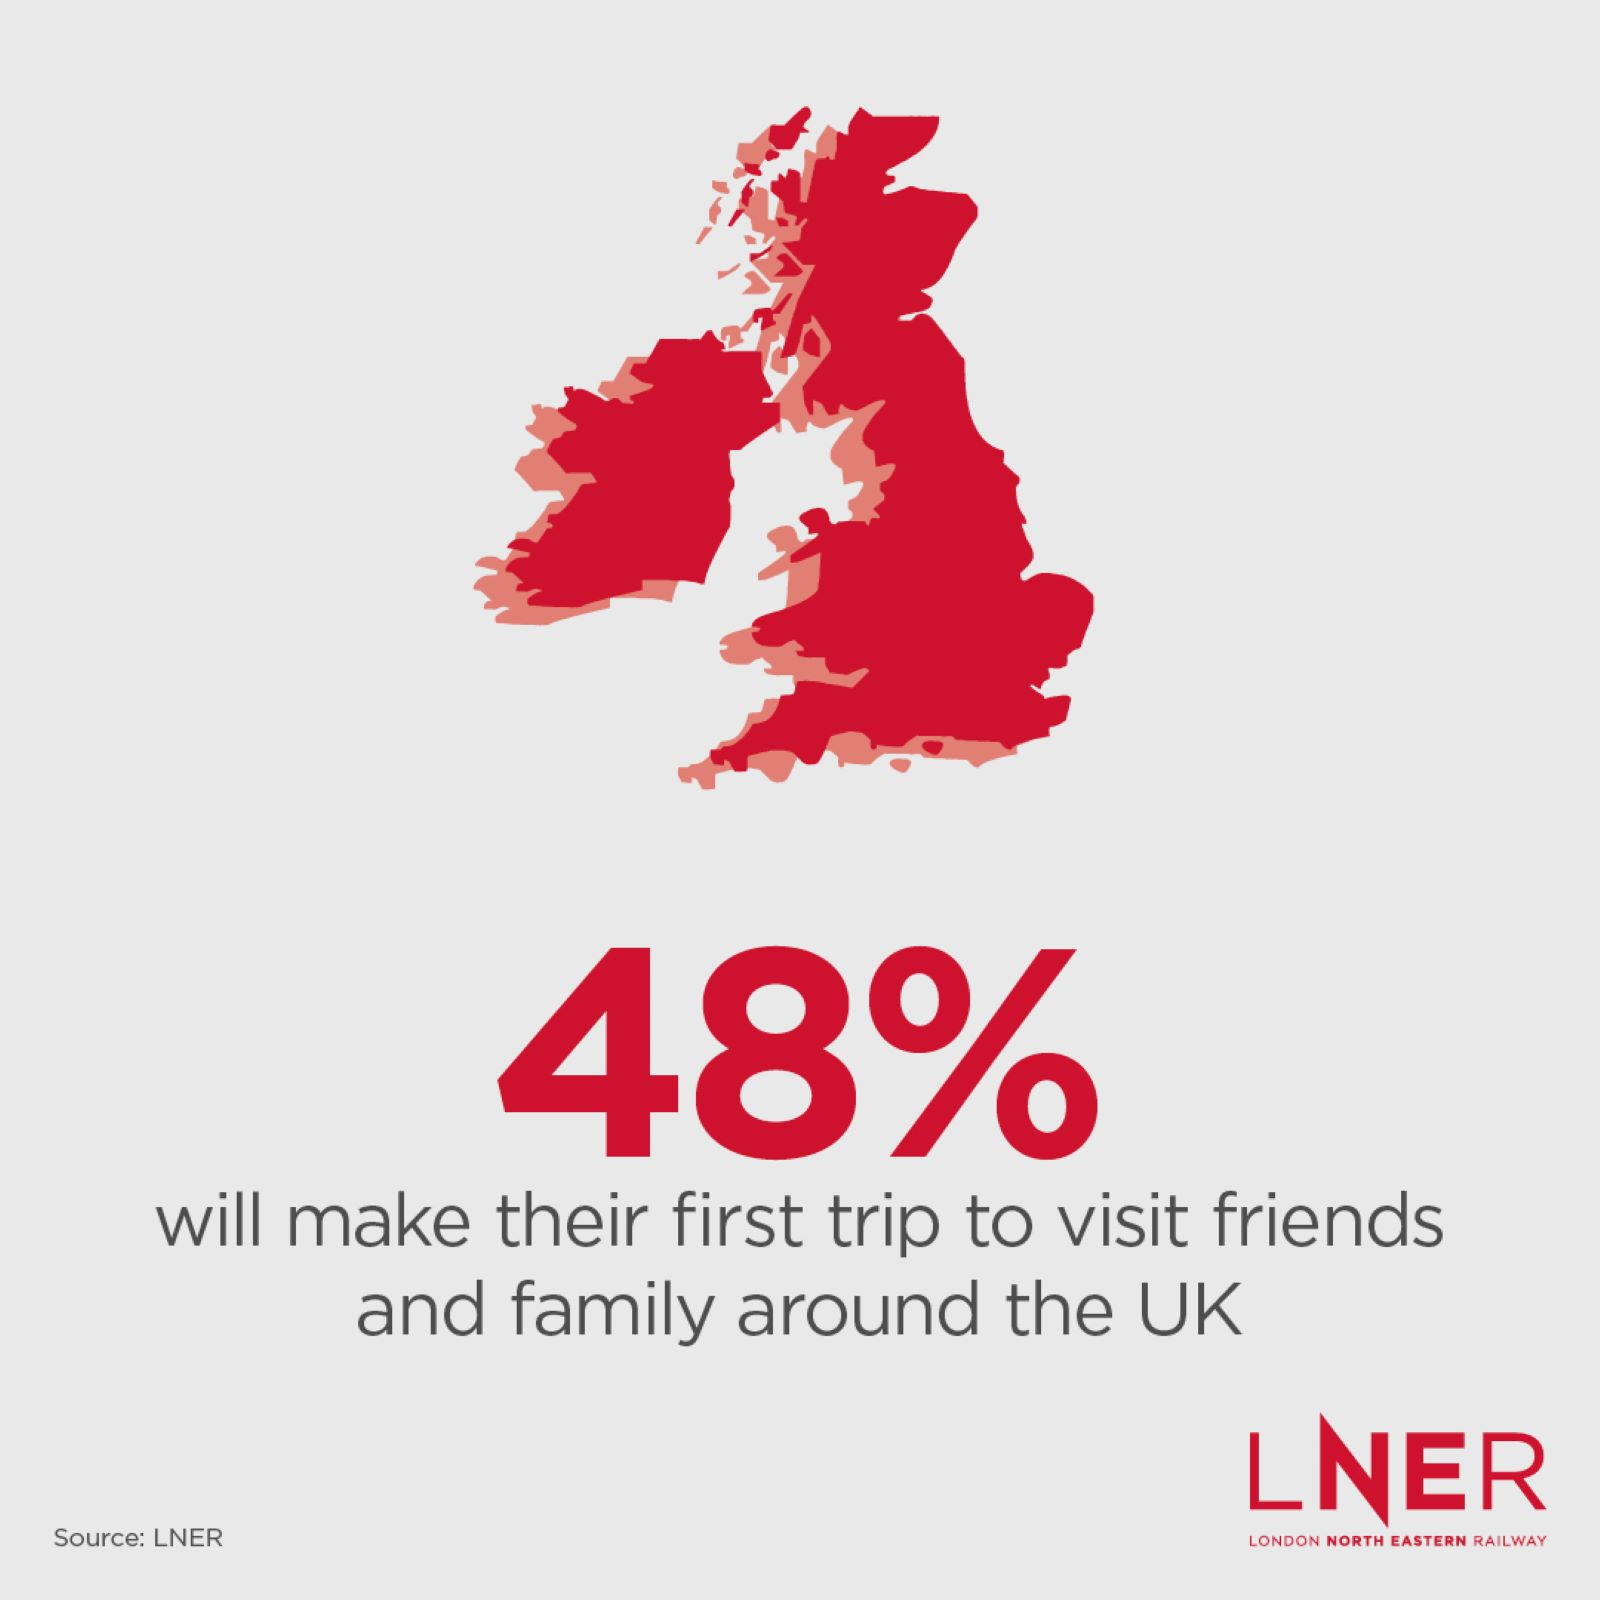 LNER Friends and Family Vaccine Research 1.jpg